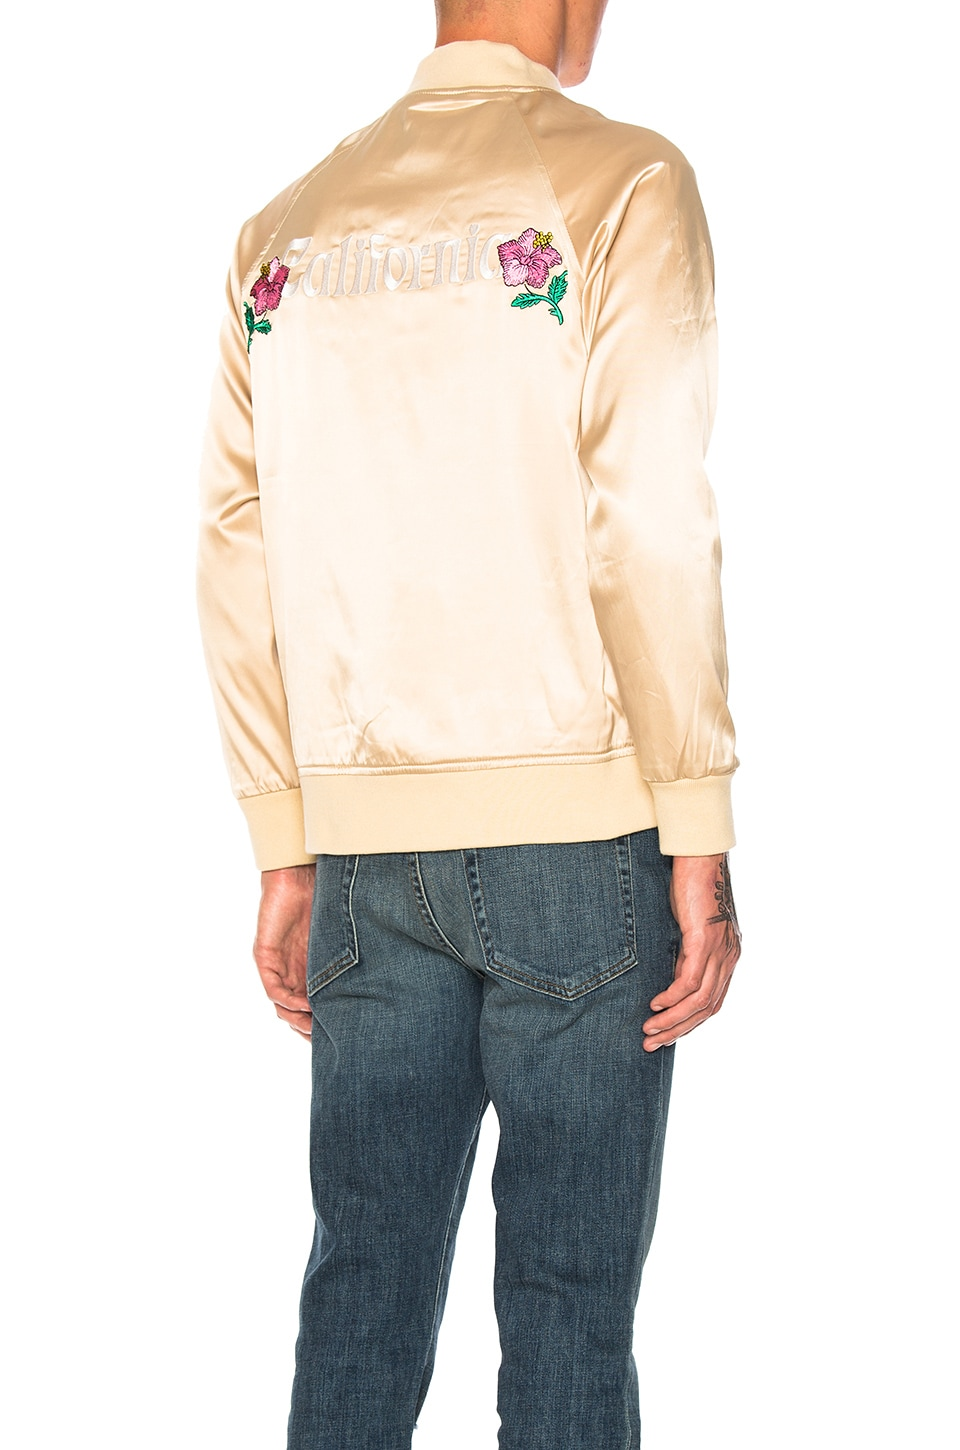 California Satin Jacket by Stussy